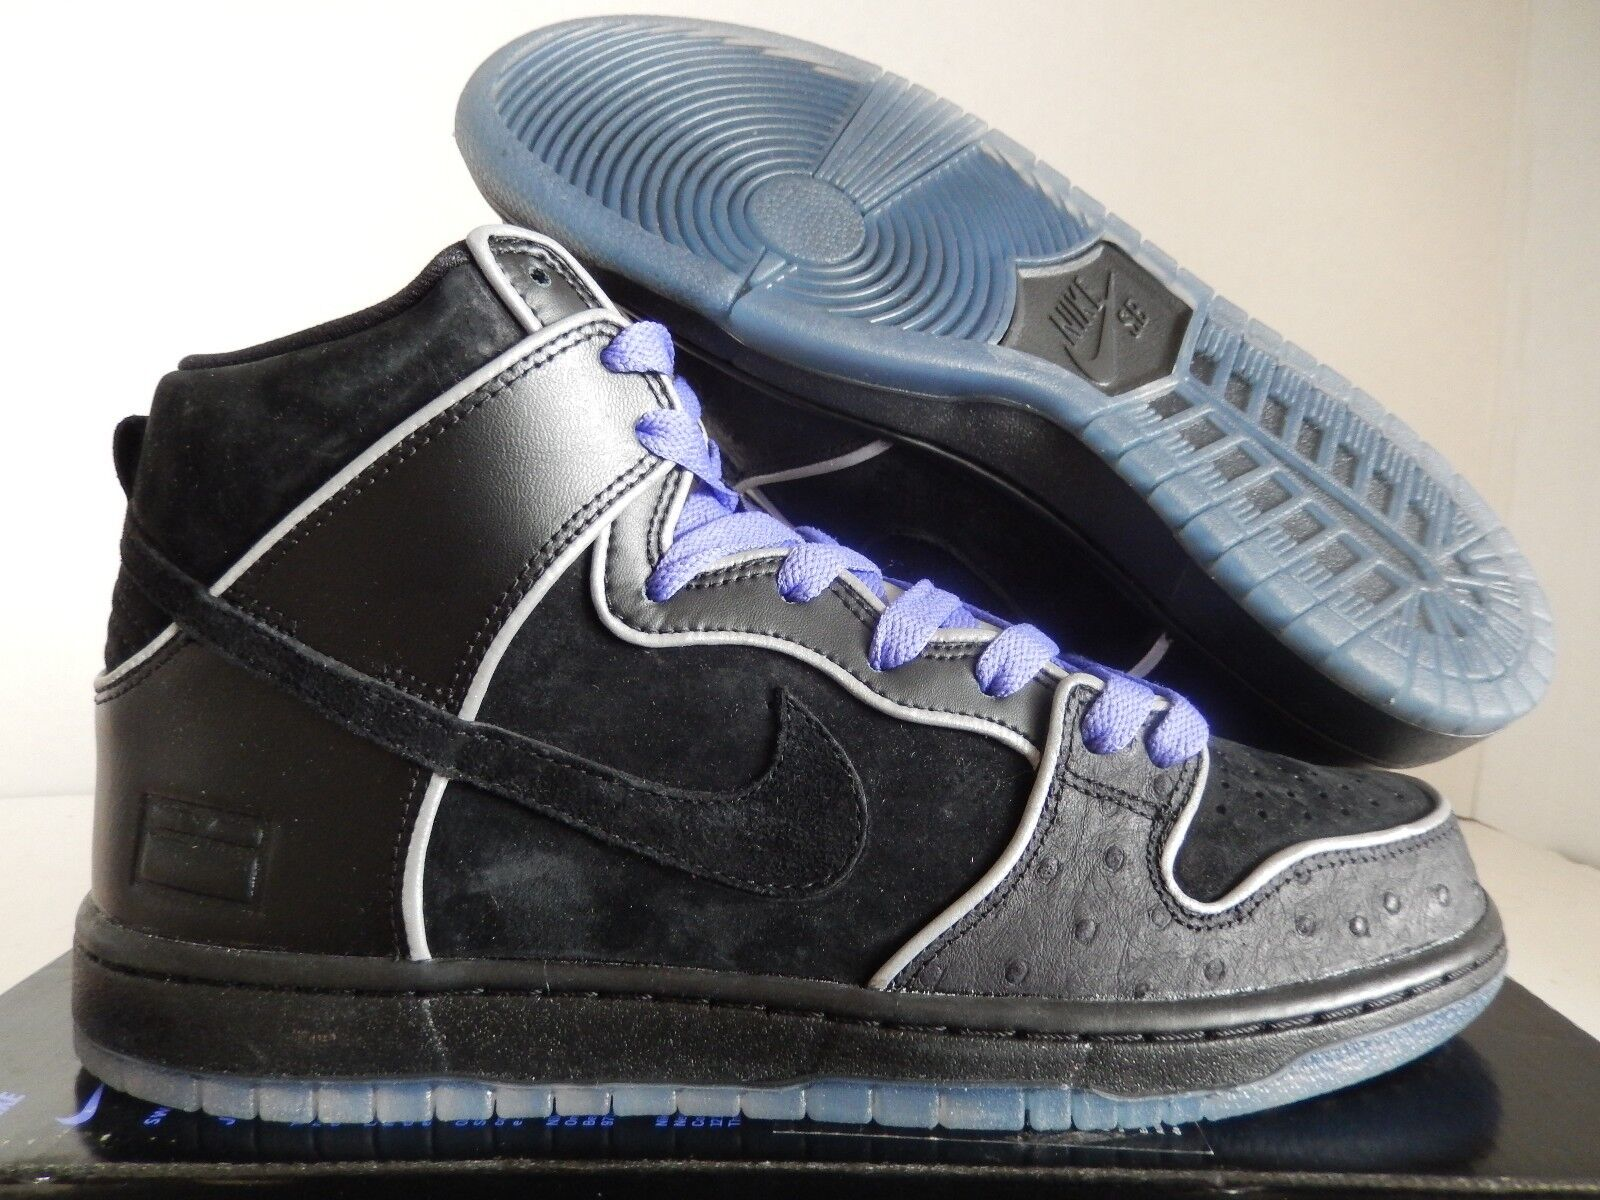 NIKE DUNK HIGH ELITE -blanc SB Noir - Noir -blanc ELITE -PURPLE HAZE SZ 11 7352d4